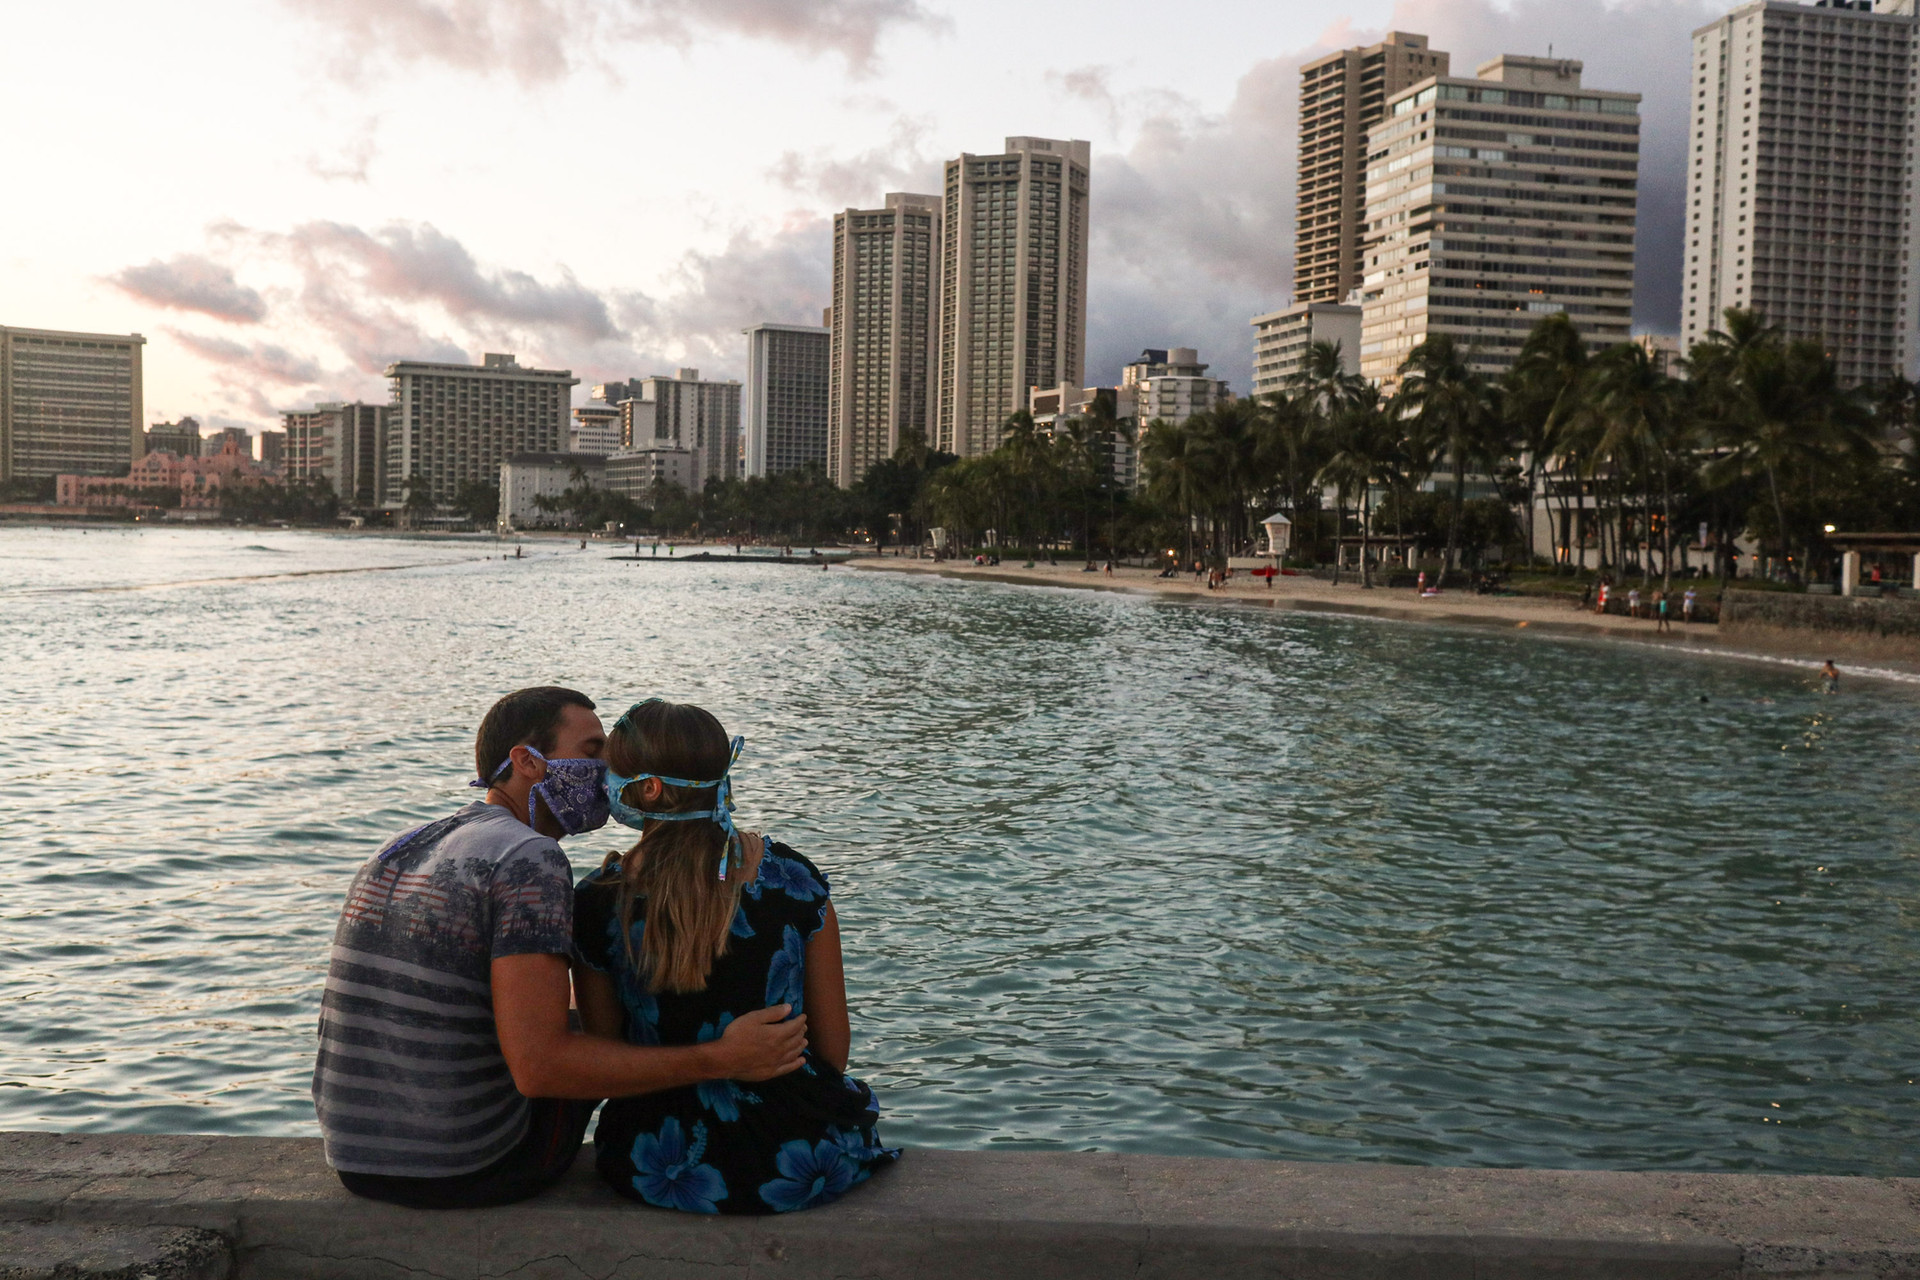 A couple spends some time close to each other in Waikiki beach on April 10, 2020. During a typical summer time, this beach is supposed to be flooded with beach goers but upon restricting the incoming tourists with 14-day mandatory quarantine, the number has dropped significantly.